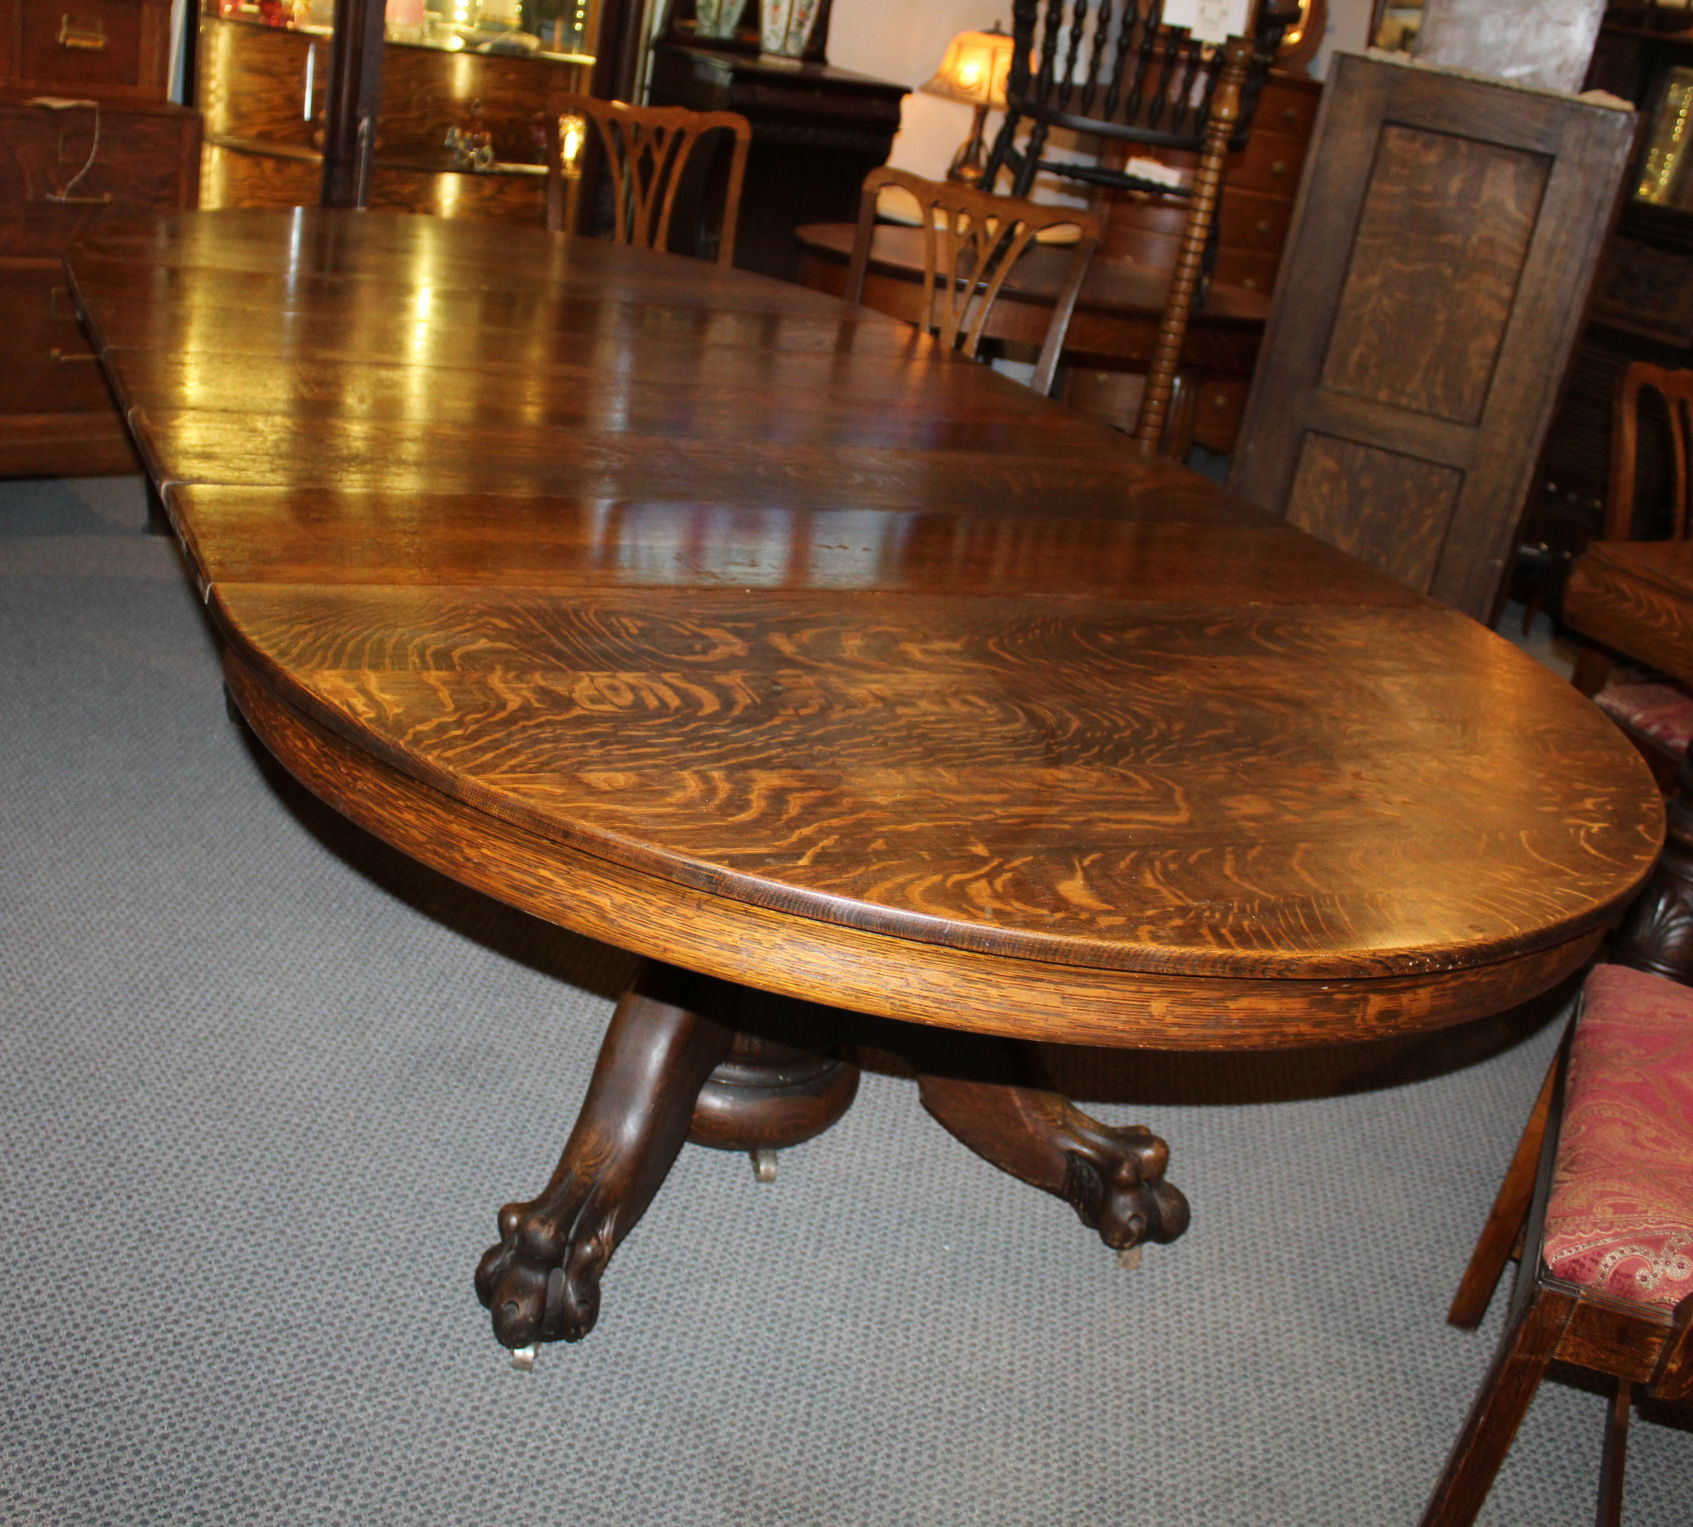 Bargain John S Antiques Antique Round Oak Dining Table Carved Claw Feet 5 Leaves Original Finish 54 Inches Bargain John S Antiques